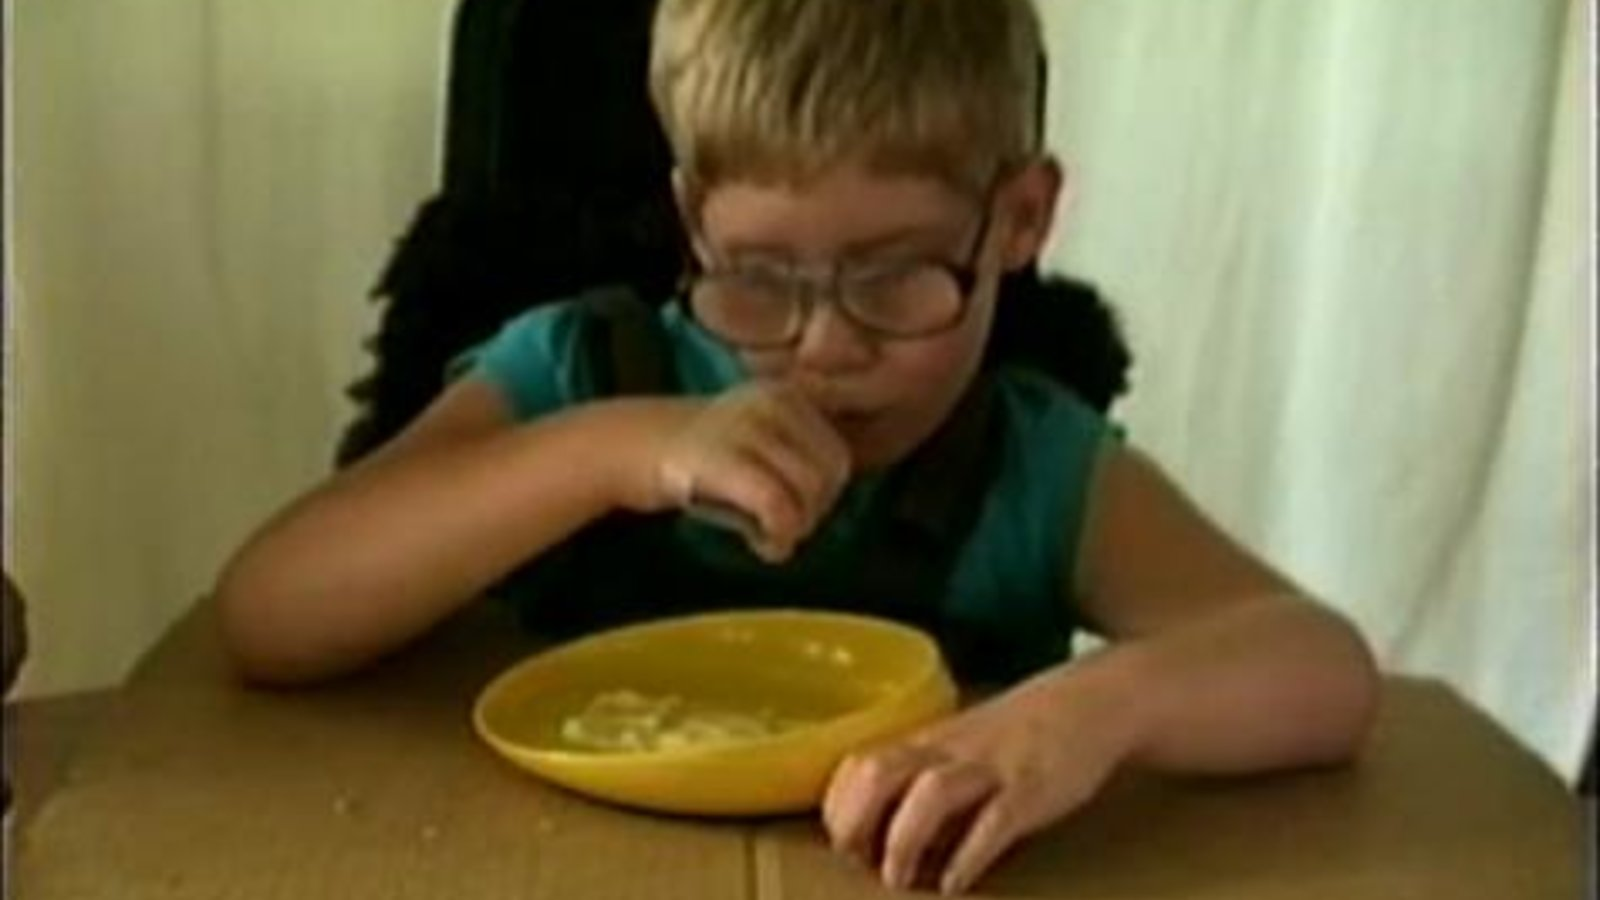 Self-Feeding in the Child with Special Needs